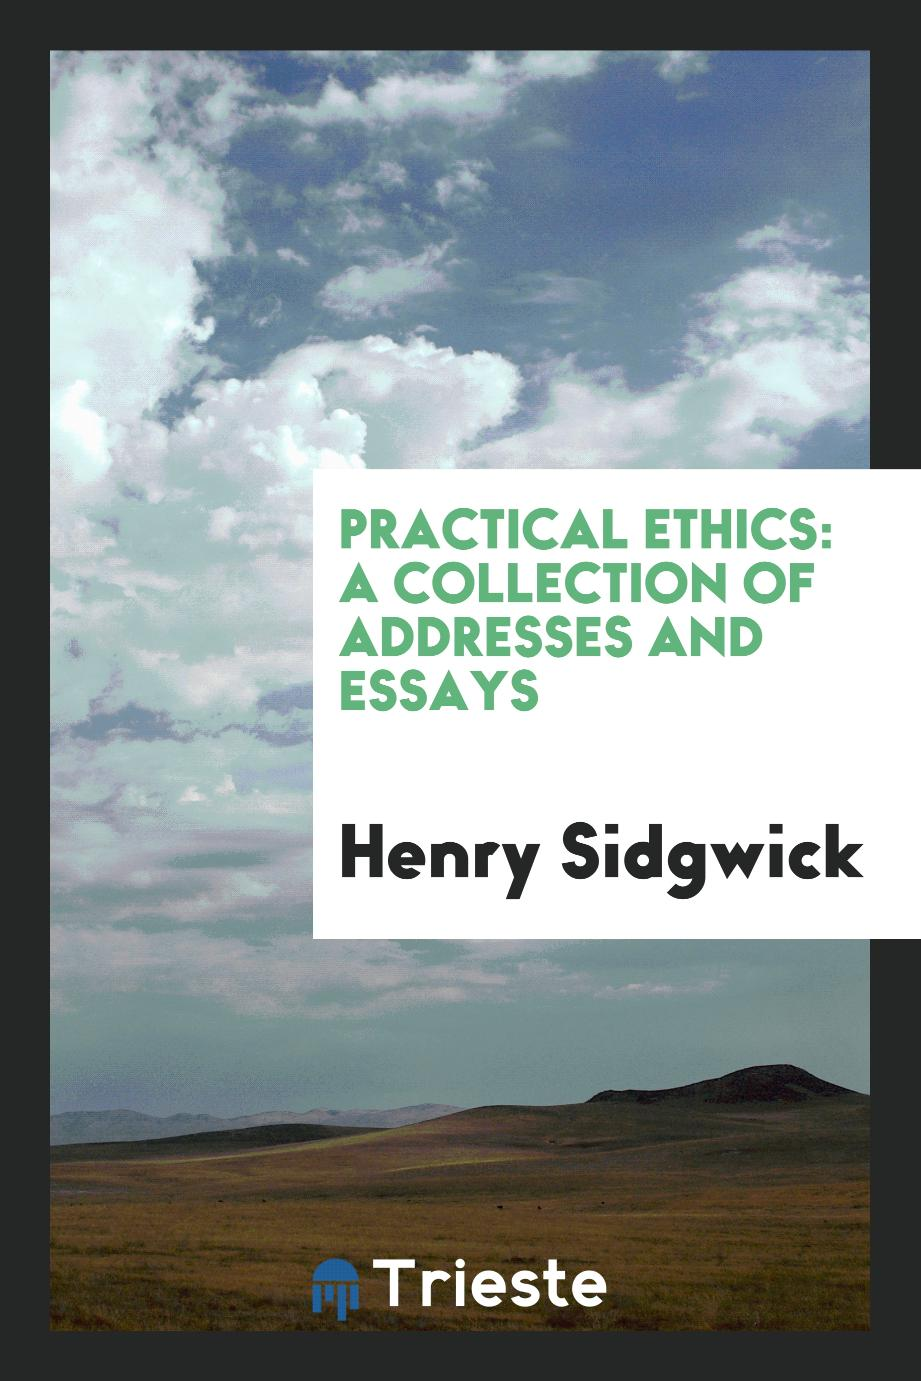 Practical ethics: a collection of addresses and essays